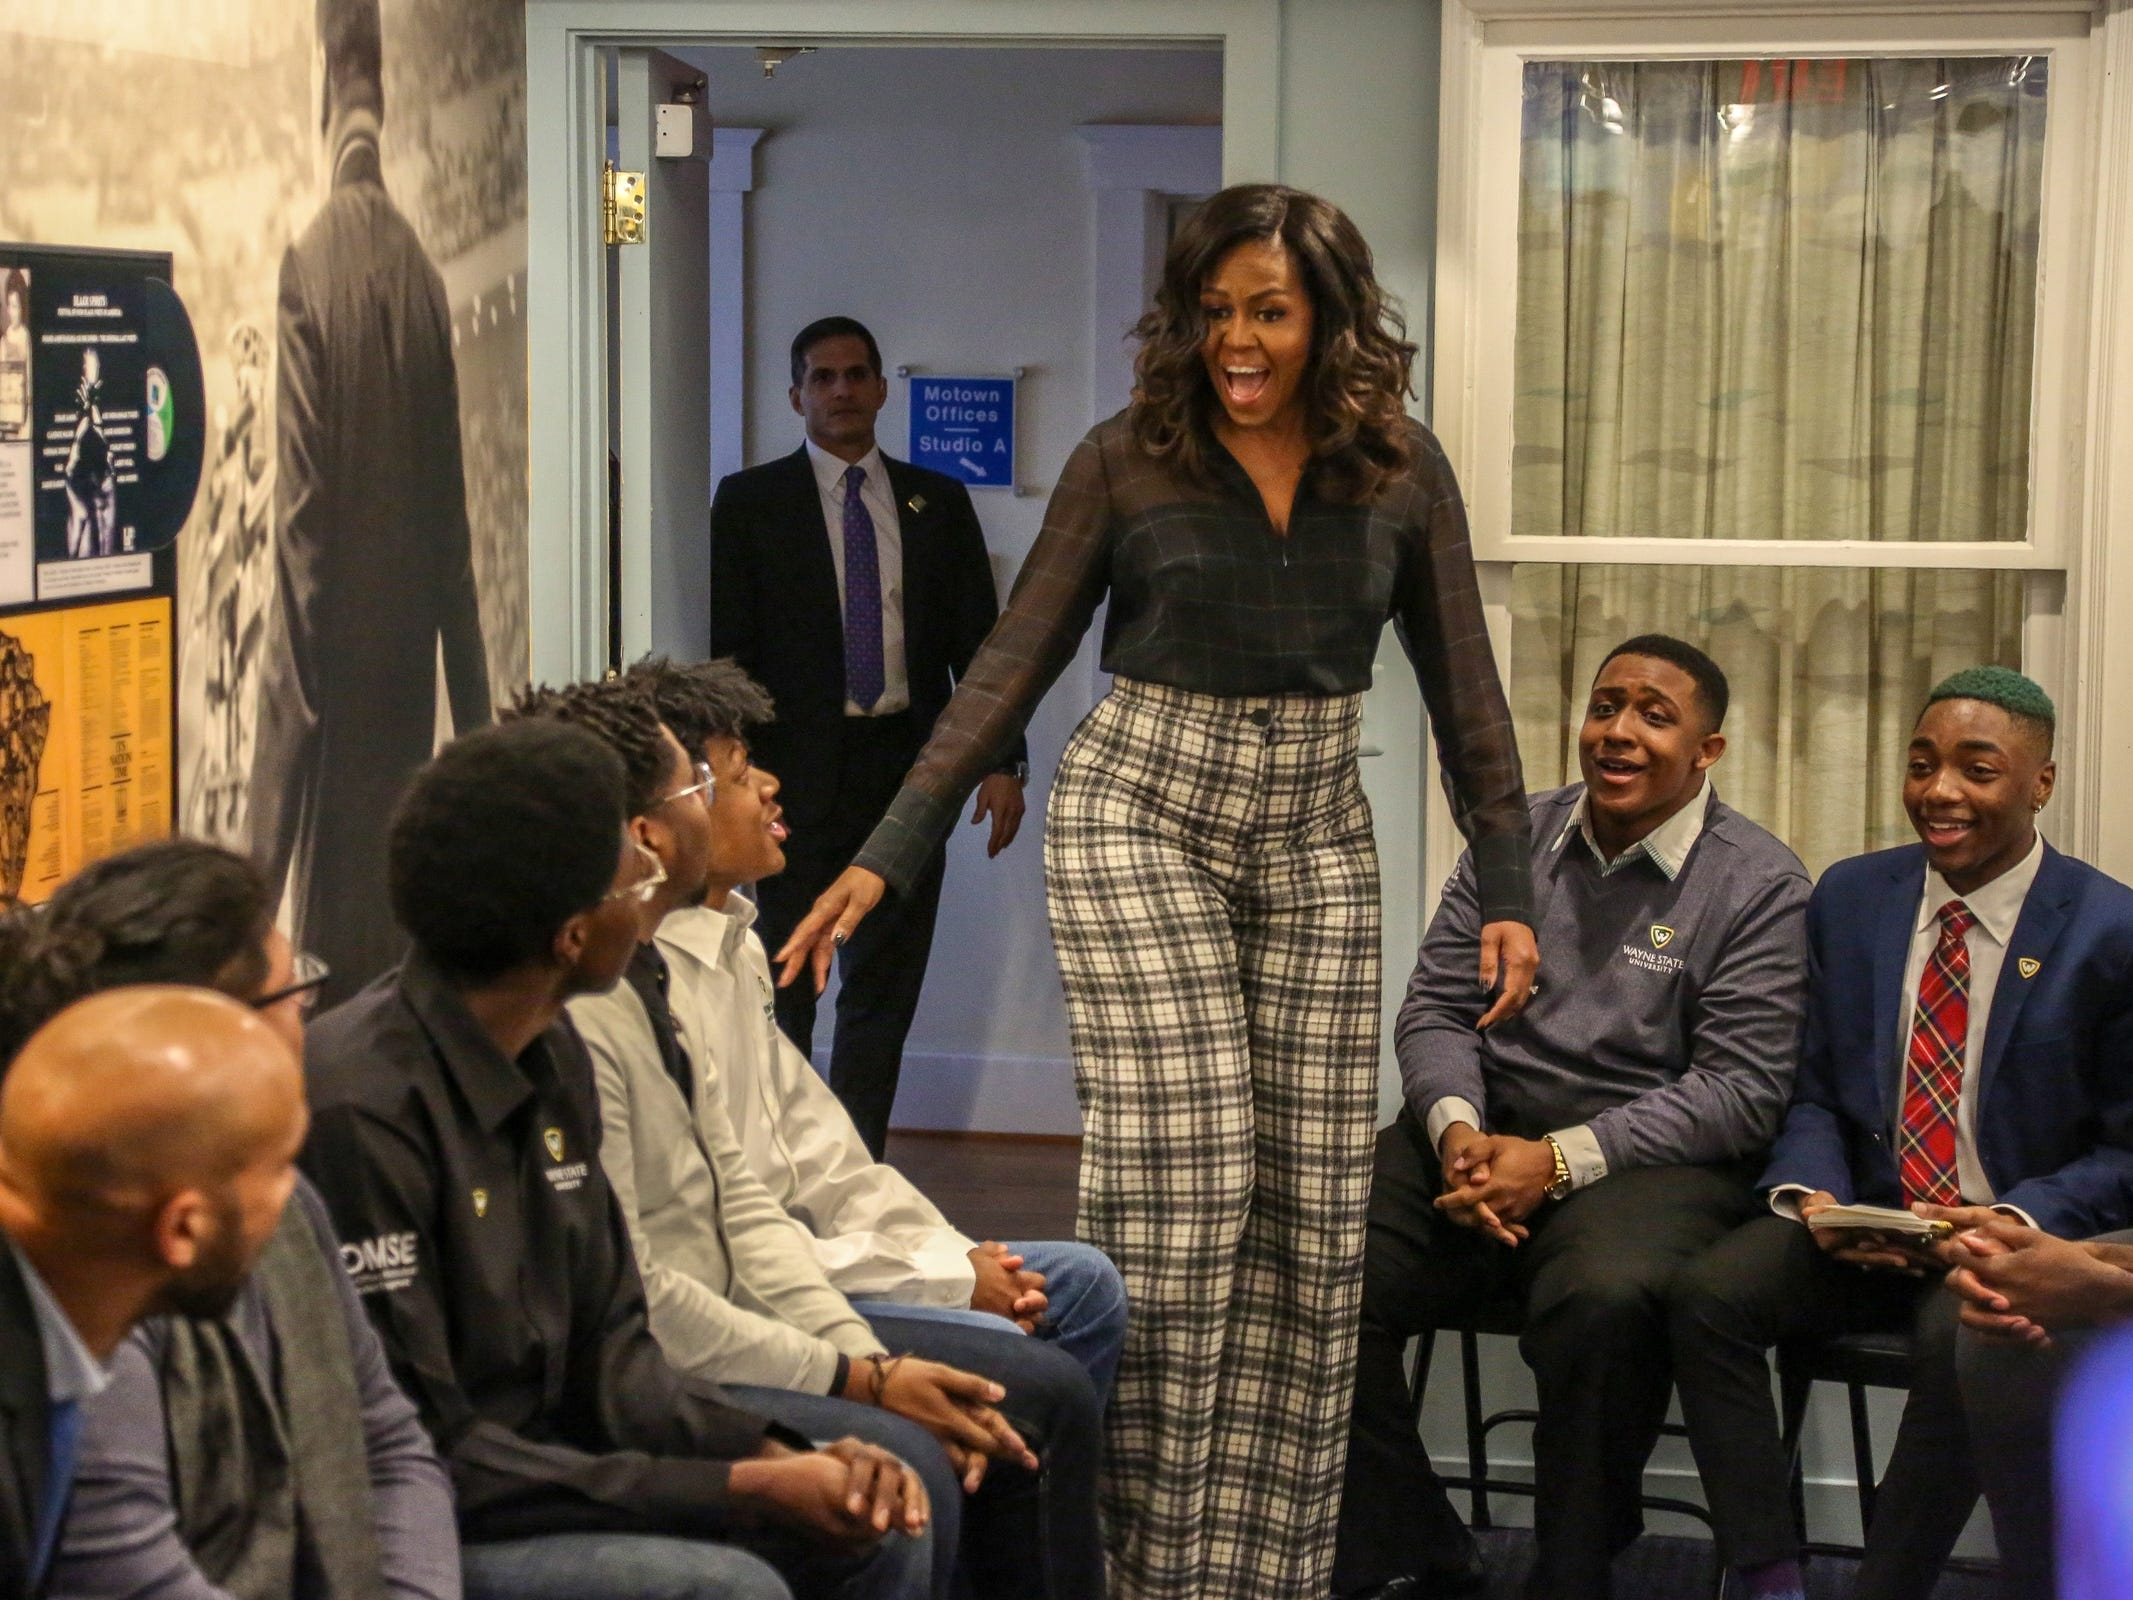 Former First Lady Michelle Obama, surprises a group of young African-American men from Wayne State University who were speaking with her brother Craig Robinson and Actor Keegan-Michael Key at Motown Museum in Detroit on Tuesday, Dec. 11, 2018.